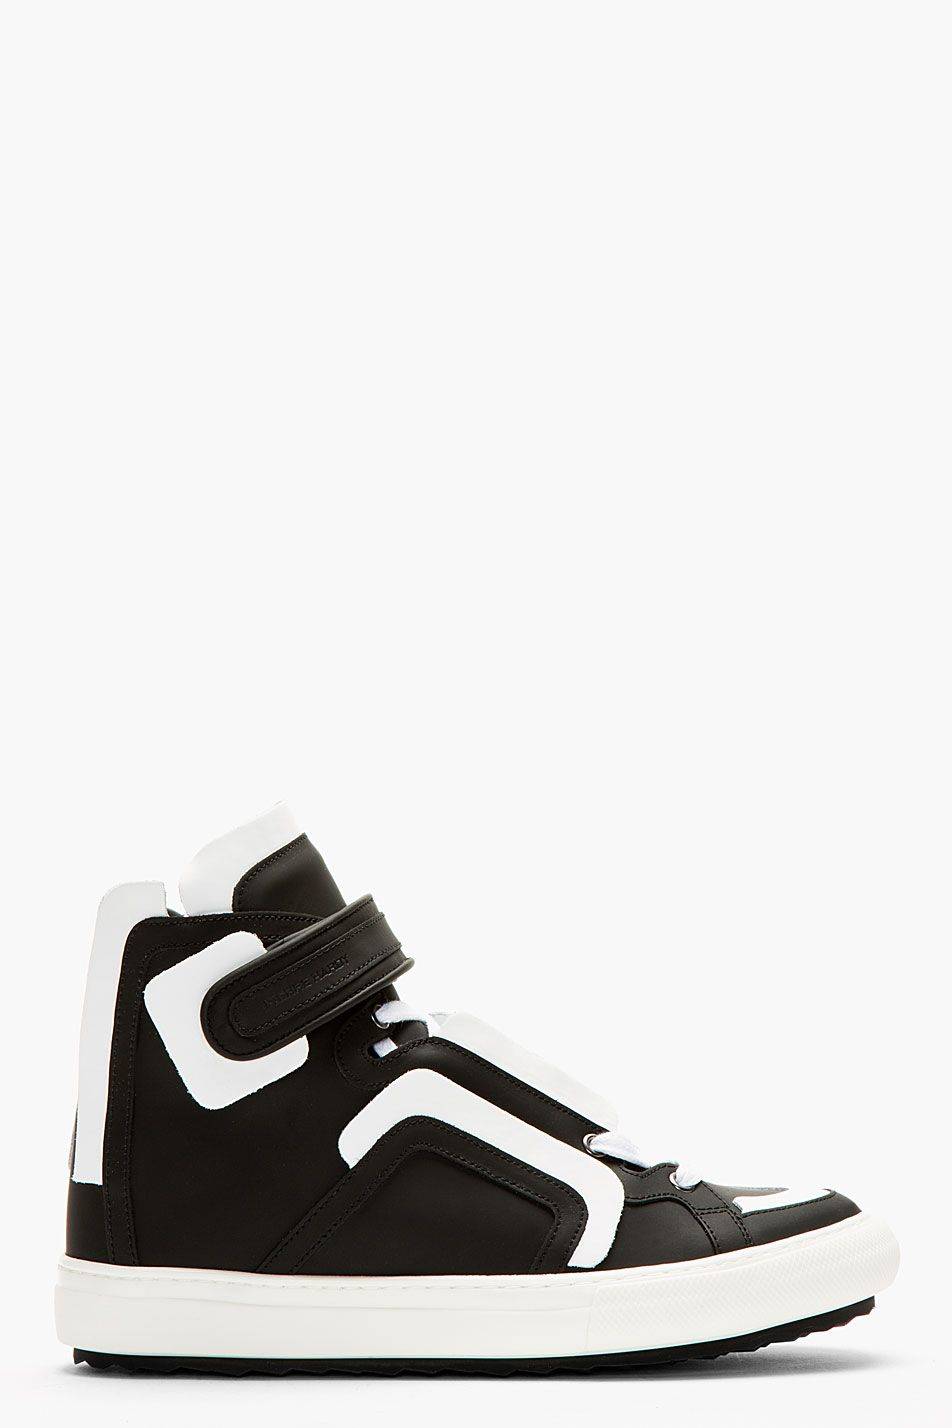 Chaussures - High-tops Et Baskets Pierre Hardy Gn7d7kNF